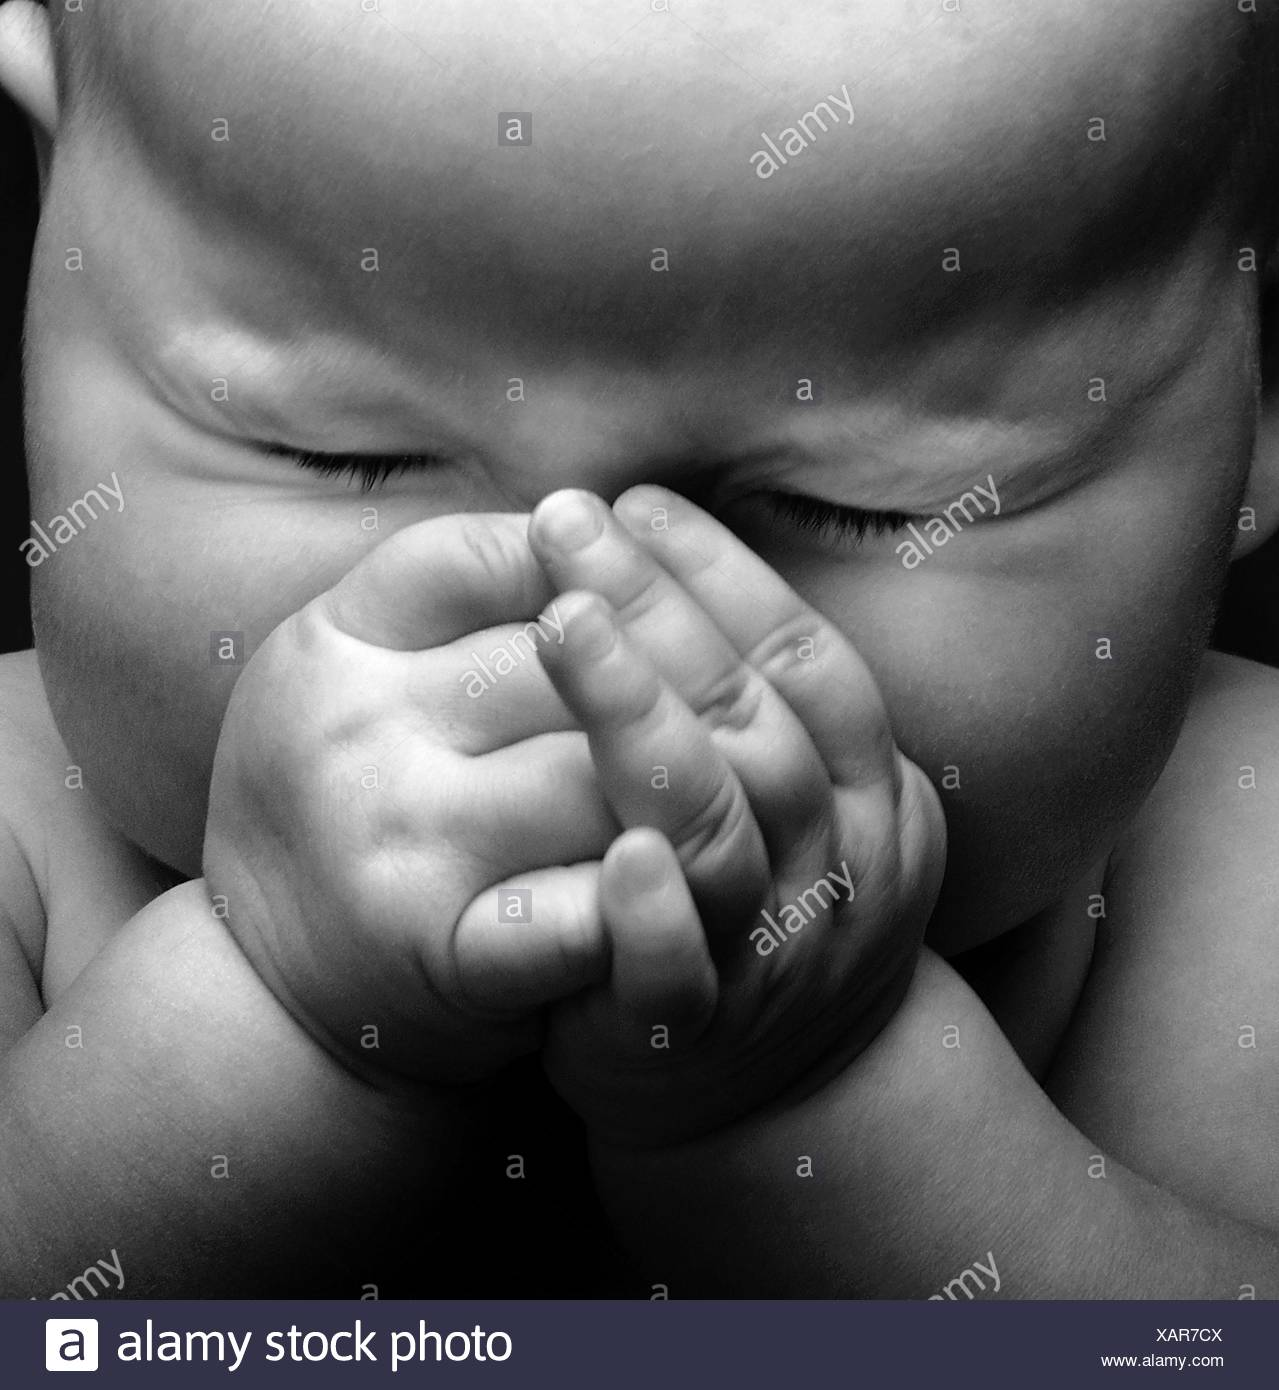 Fl2480 nick kelsh baby hands cupped over face stock image